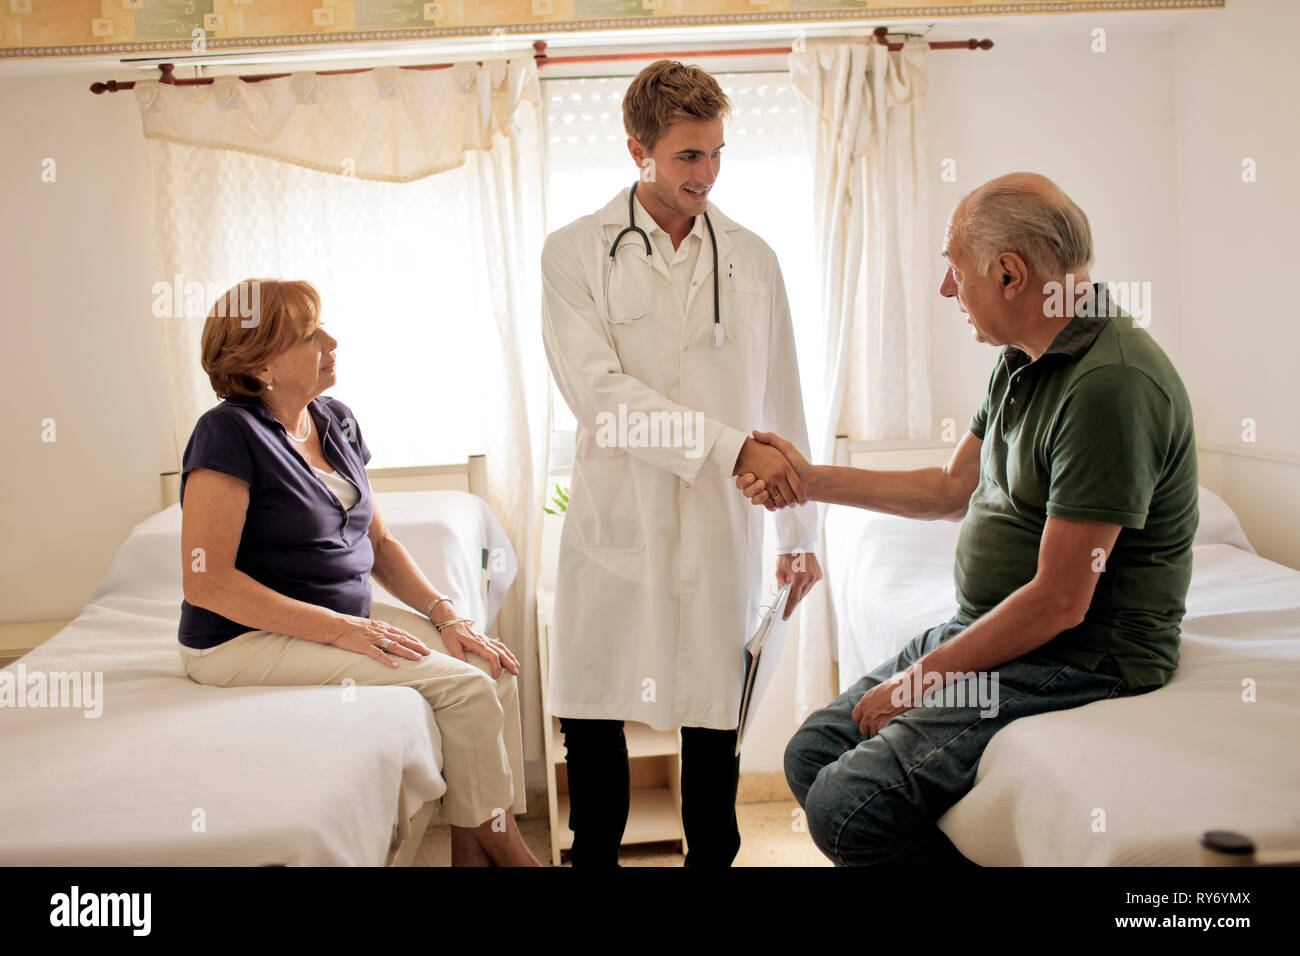 Young doctor greeting female patient and her husband in hospital room. Stock Photo